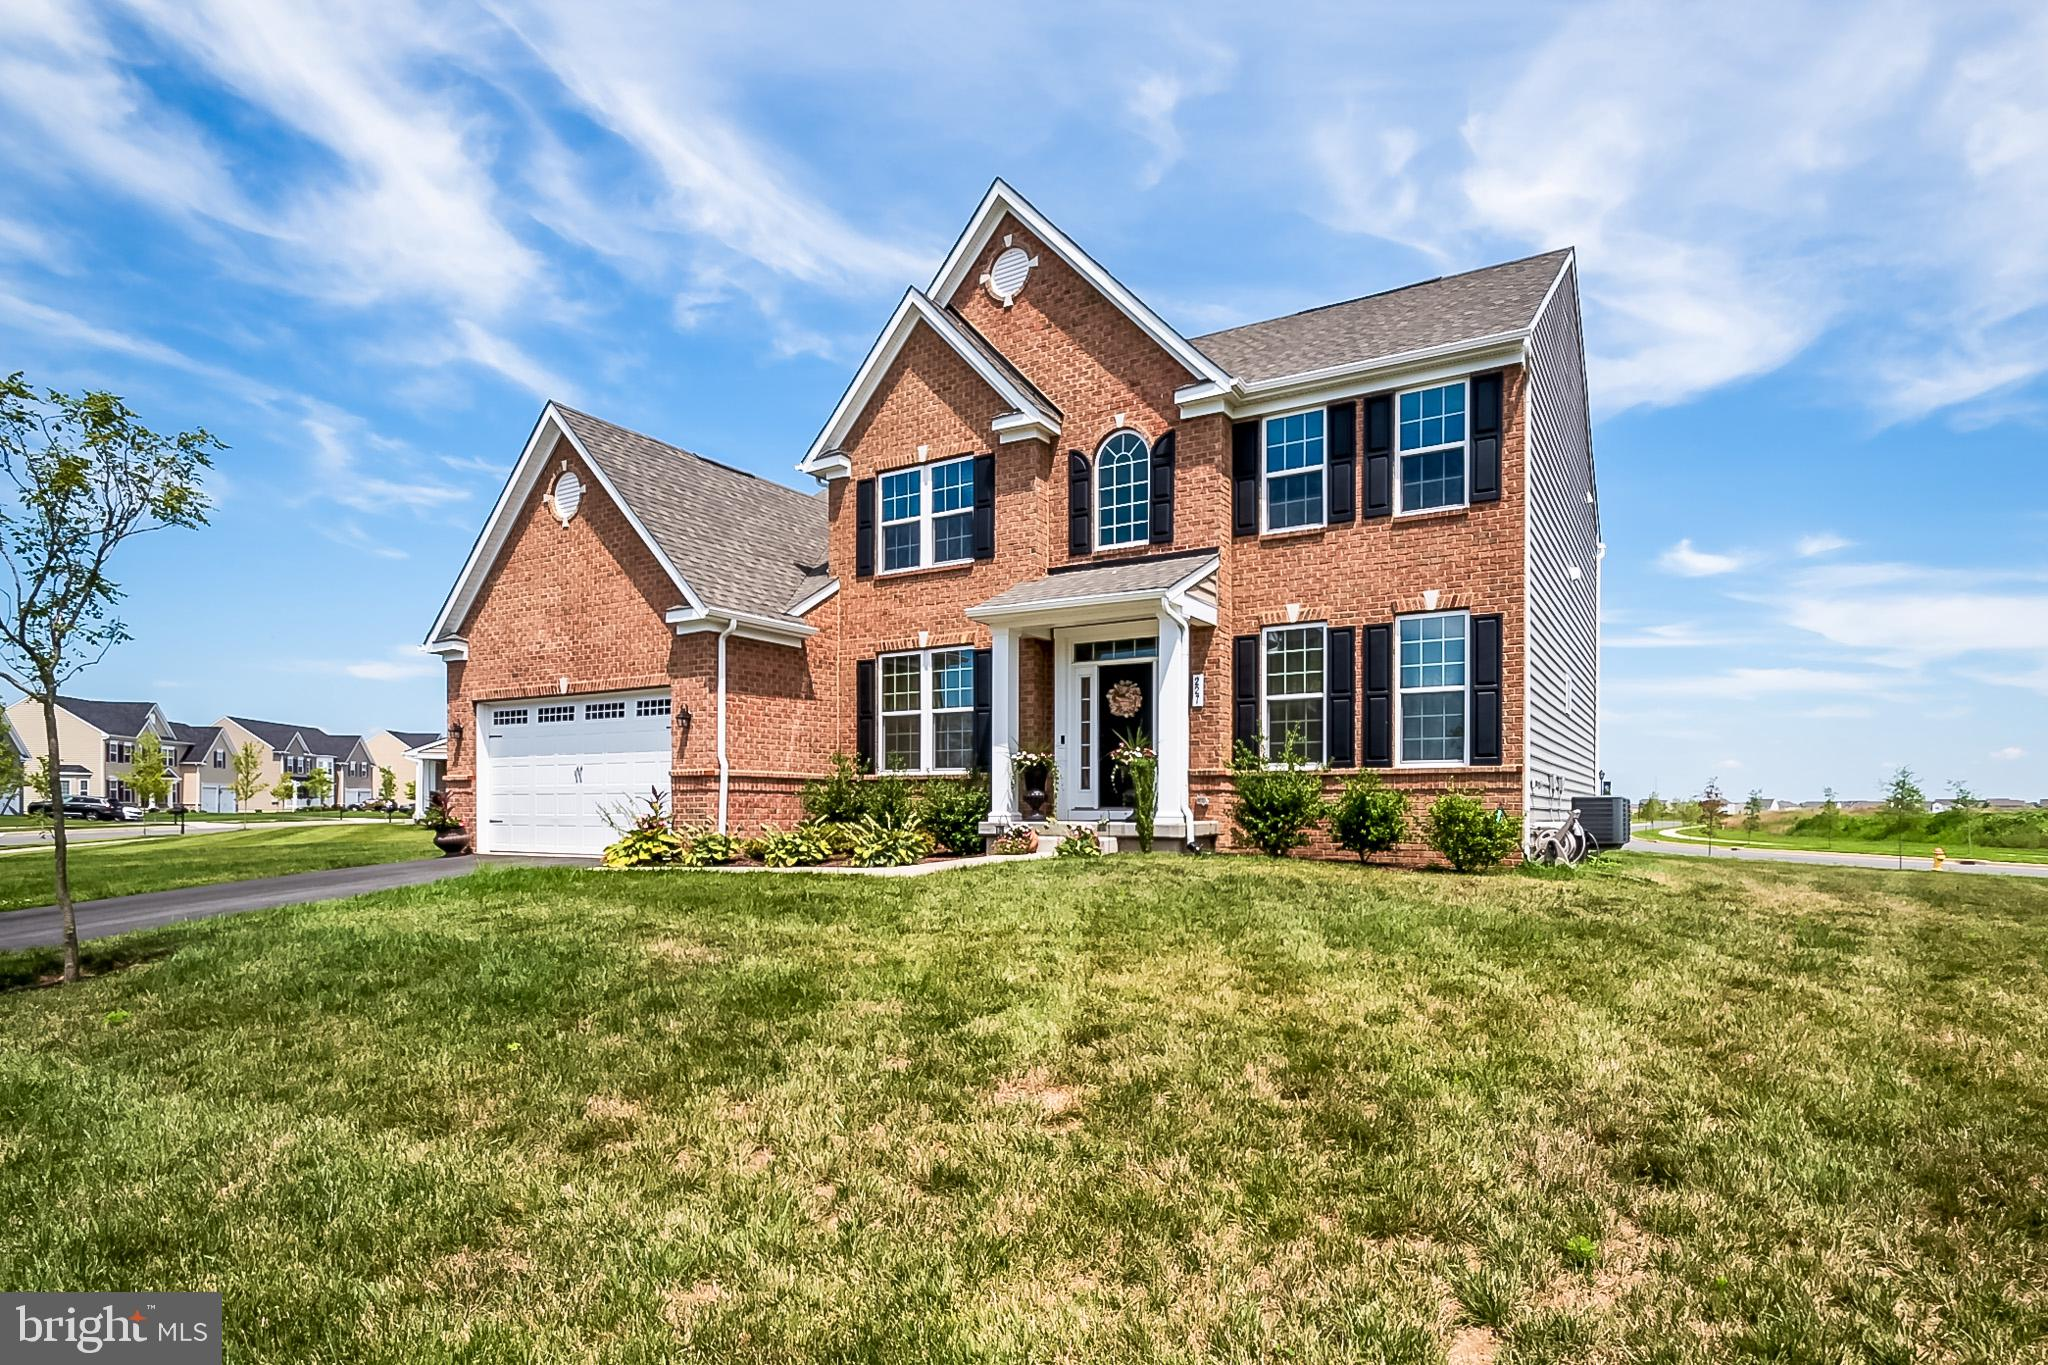 This Beautiful and Unique Jefferson Square Model in the sought after Appoquinimink School District, was  built in 2017, by Ryan Home builders, and its the only one of its kind in Delaware.  Enter into the stunning 2 story over look Foyer and curved staircase. This model offers Crown molding and a upgraded recessed lighting package in the living room, dining room, office and throughout this home. 42 inch kitchen cabinets with crown molding, large counter tops and an extended kitchen island, stainless steel appliances, upgraded gas cooking stove, walk in pantry, with bonus morning room and planners desk is all found in the gorgeous gourmet kitchen. You will find  9? ceilings in the Morning Room and throughout this home.  The 2 story foyer has  hardwood flooring that leads into a huge separate formal living room and dining room.  The Over sized Family Room features a gas fireplace with an overlook of the gourmet kitchen and well landscaped yard.  Upgraded owner suite comes with a separate sitting area, tray ceiling and 3 large closets.  Relax in your upgraded master bathroom with double vanities, Jacuzzi soaking tub, tiled shower and upgraded ceramic tiled floors. There are 3 additional nicely sized bedrooms on the upper level with a full upgraded tile Hall bath. The lower level offers a beautifully finished basement area with walkout entrance,  bar, unfinished exercise and movie theater rooms plus a bathroom rough in.  The upstairs Laundry room also comes with rough in for a utility tub. Secondary bathroom with double bowl vanity and upgraded ceramic tile. Full Attic for ample storage. This upgraded home has a Full brick front with partial porch.  All rooms are Cable ready,  Wall mount ready with a ton of outlets. Dual level heating and air conditioning with  ceiling fan rough ins in all rooms plus a Tank less water heater to top off this diamond in the rough . This home is a corner lot that sits on a   .61 - lot,  Across from the Golf Course, its pure perfection and 